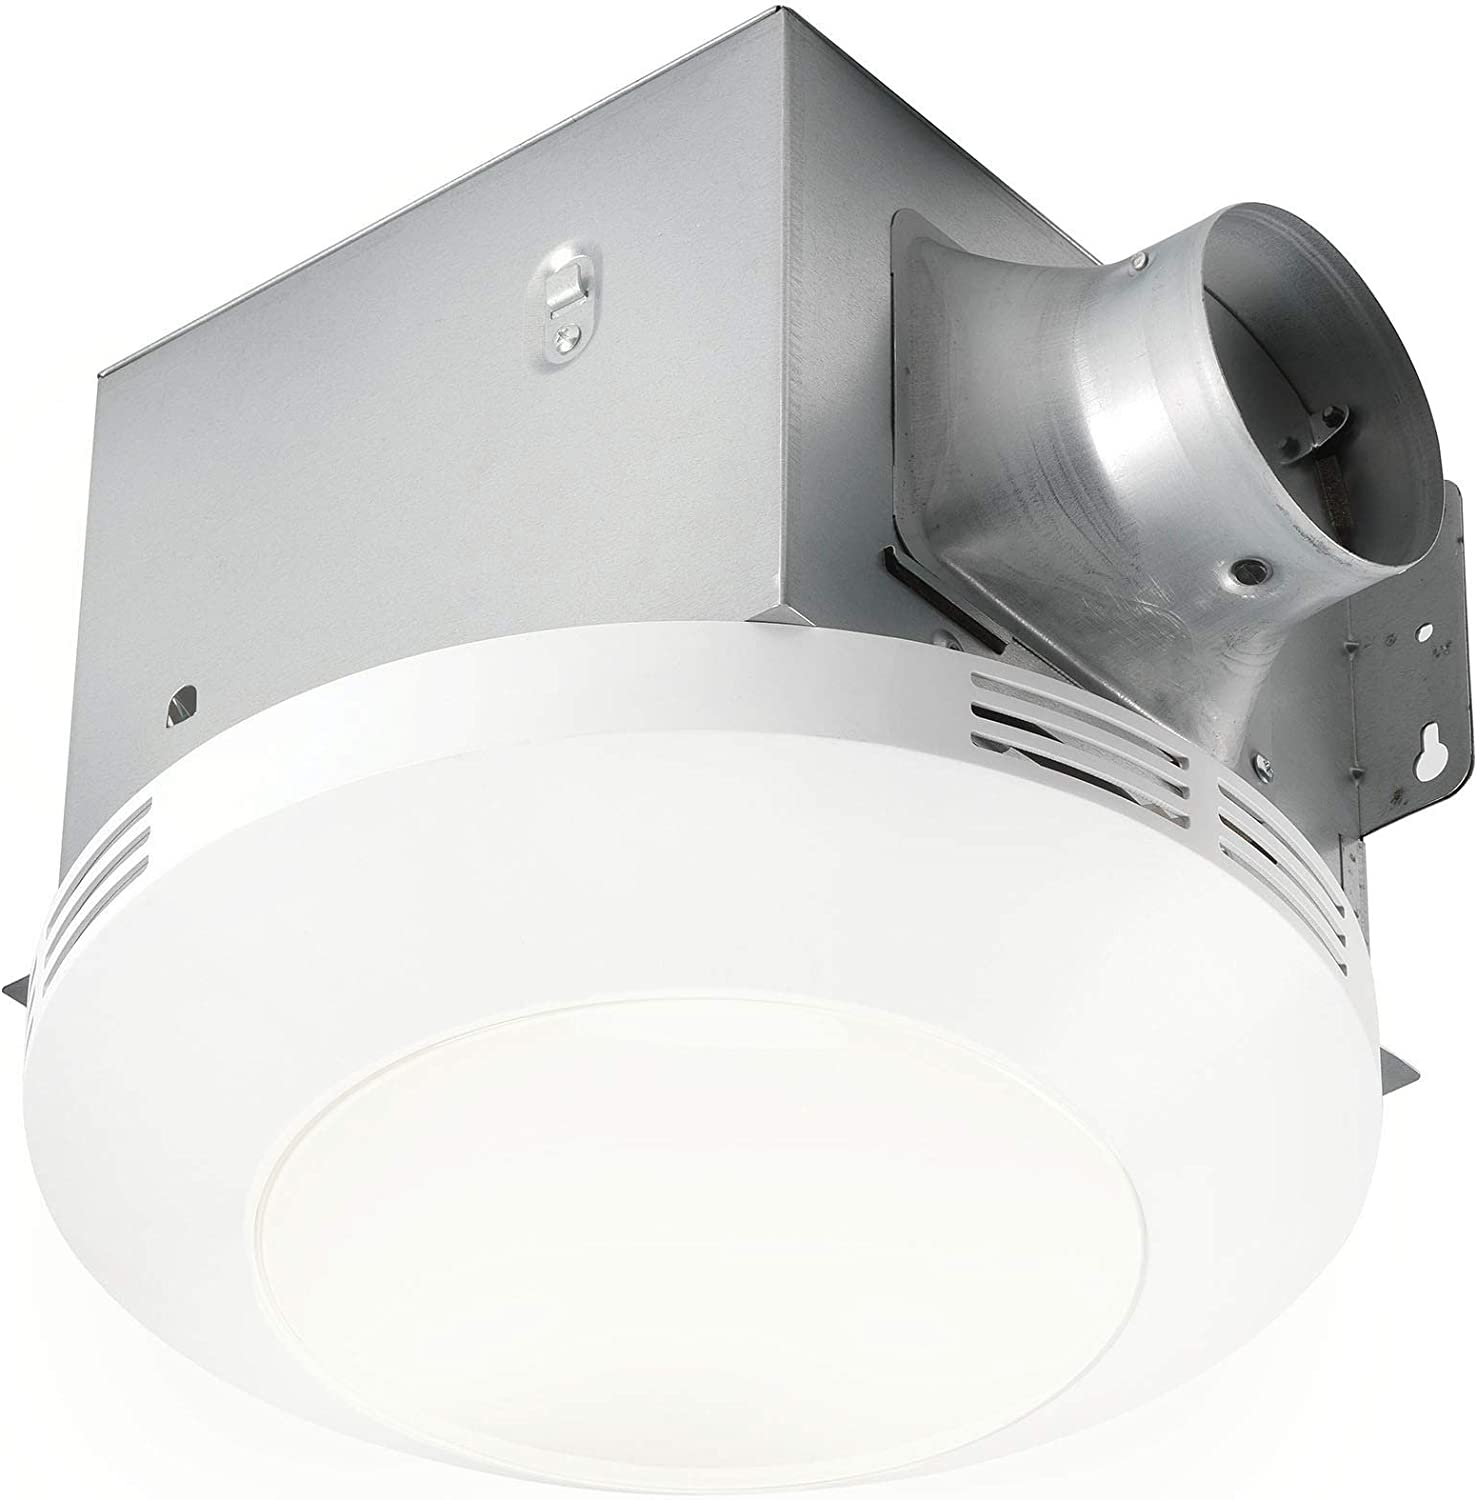 Homewerks Worldwide 7117-01-WH Bathroom Integrated LED Light Ceiling Mount Exhaust Ventilation 1.1 Sones 80 CFM, Bath Fan White